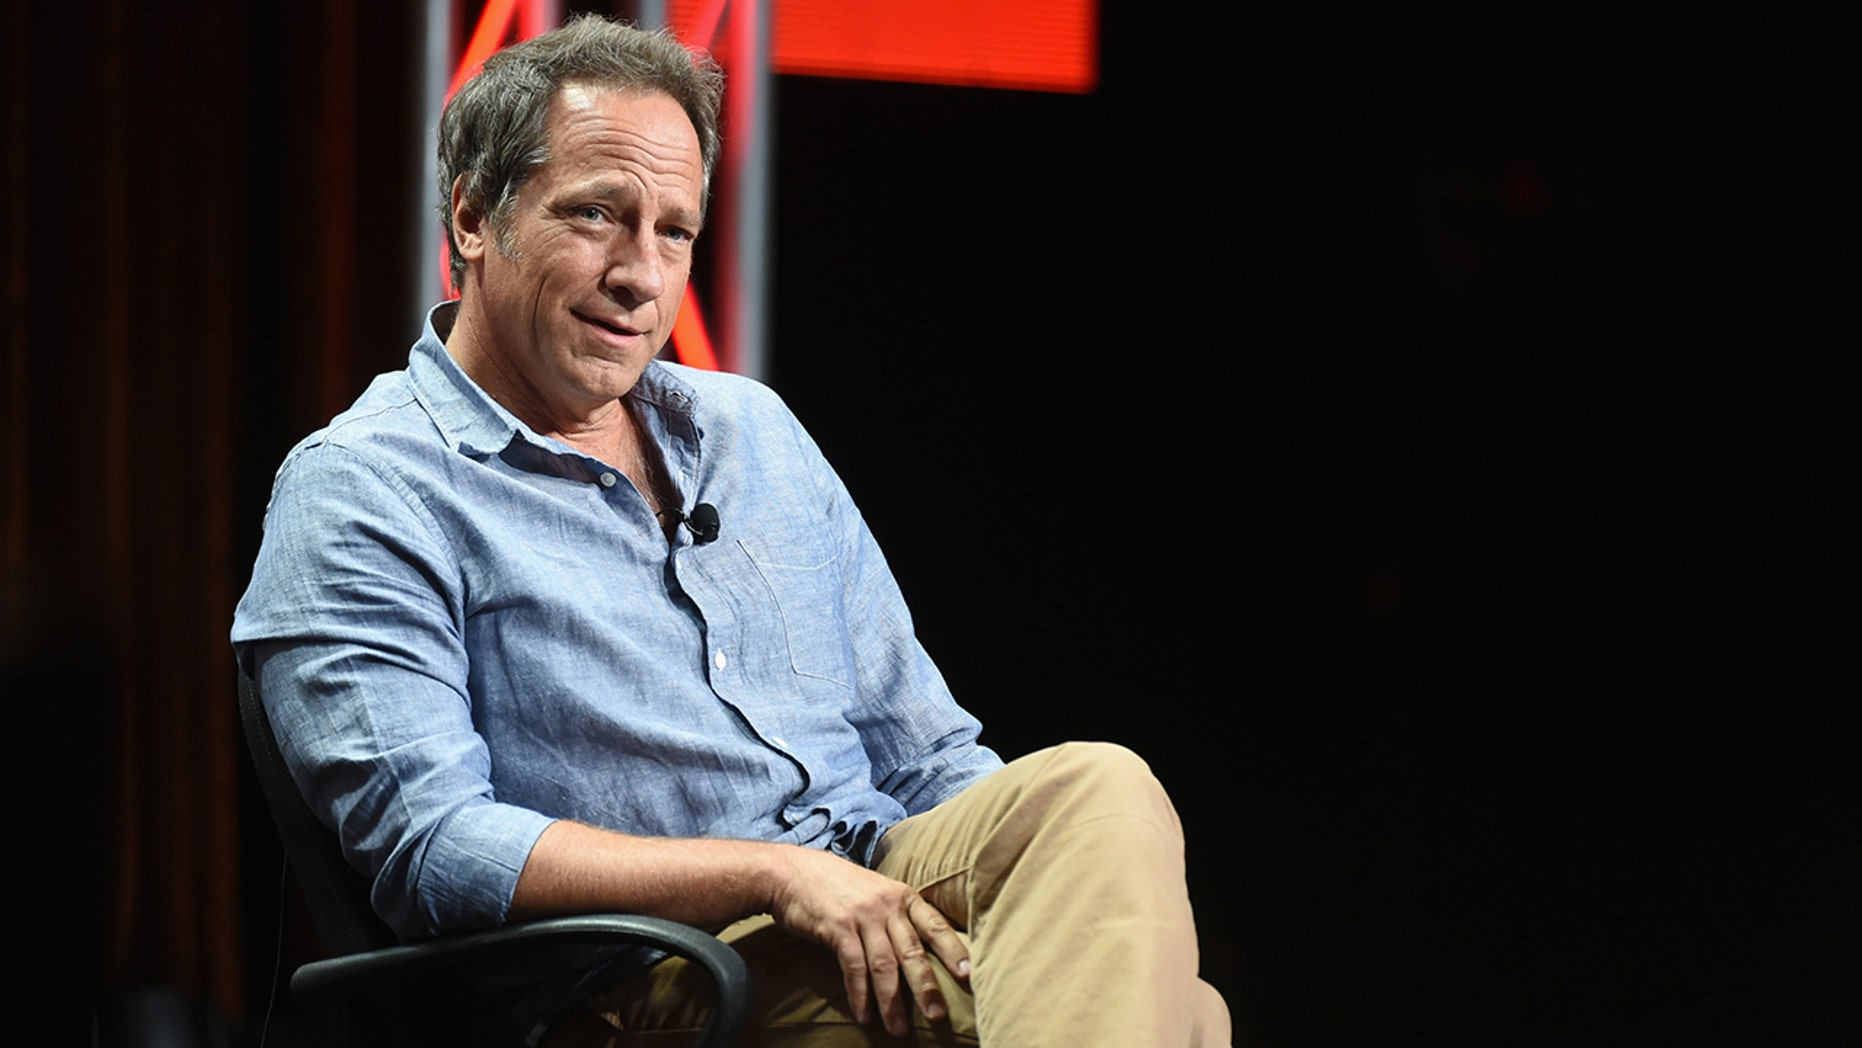 Mike rowe stand up